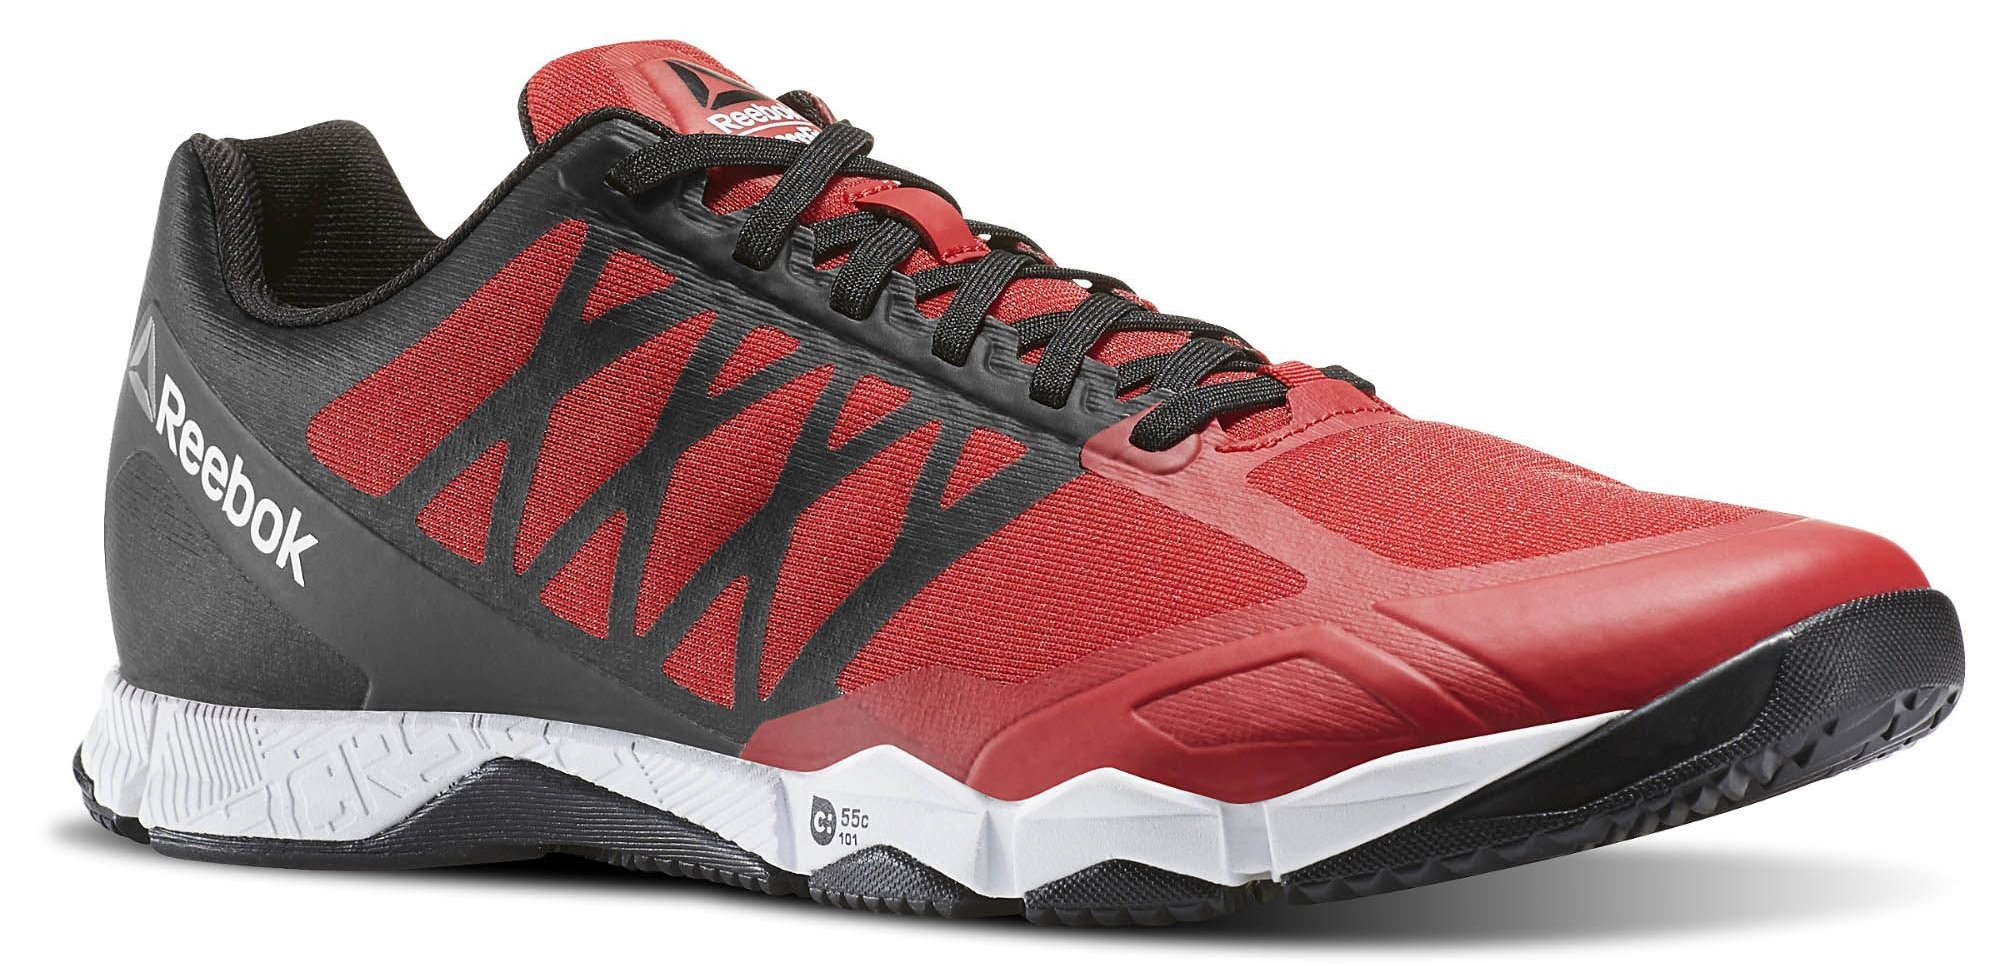 Reebok Top Speed Running Shoes Review